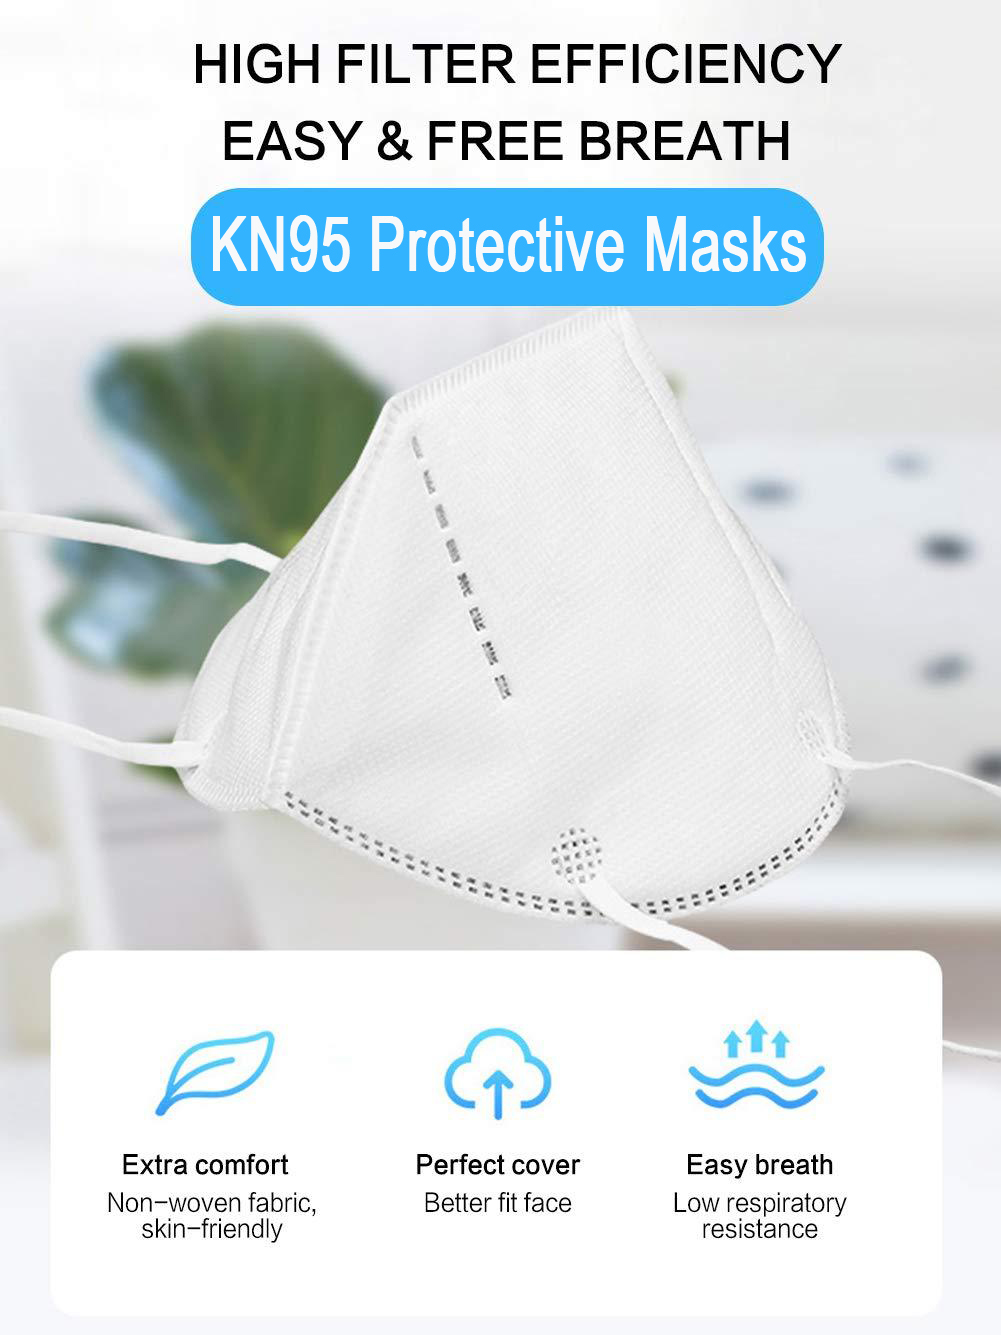 KN95 5-Layer Surgical Masks For Your Protection - 10 Pack